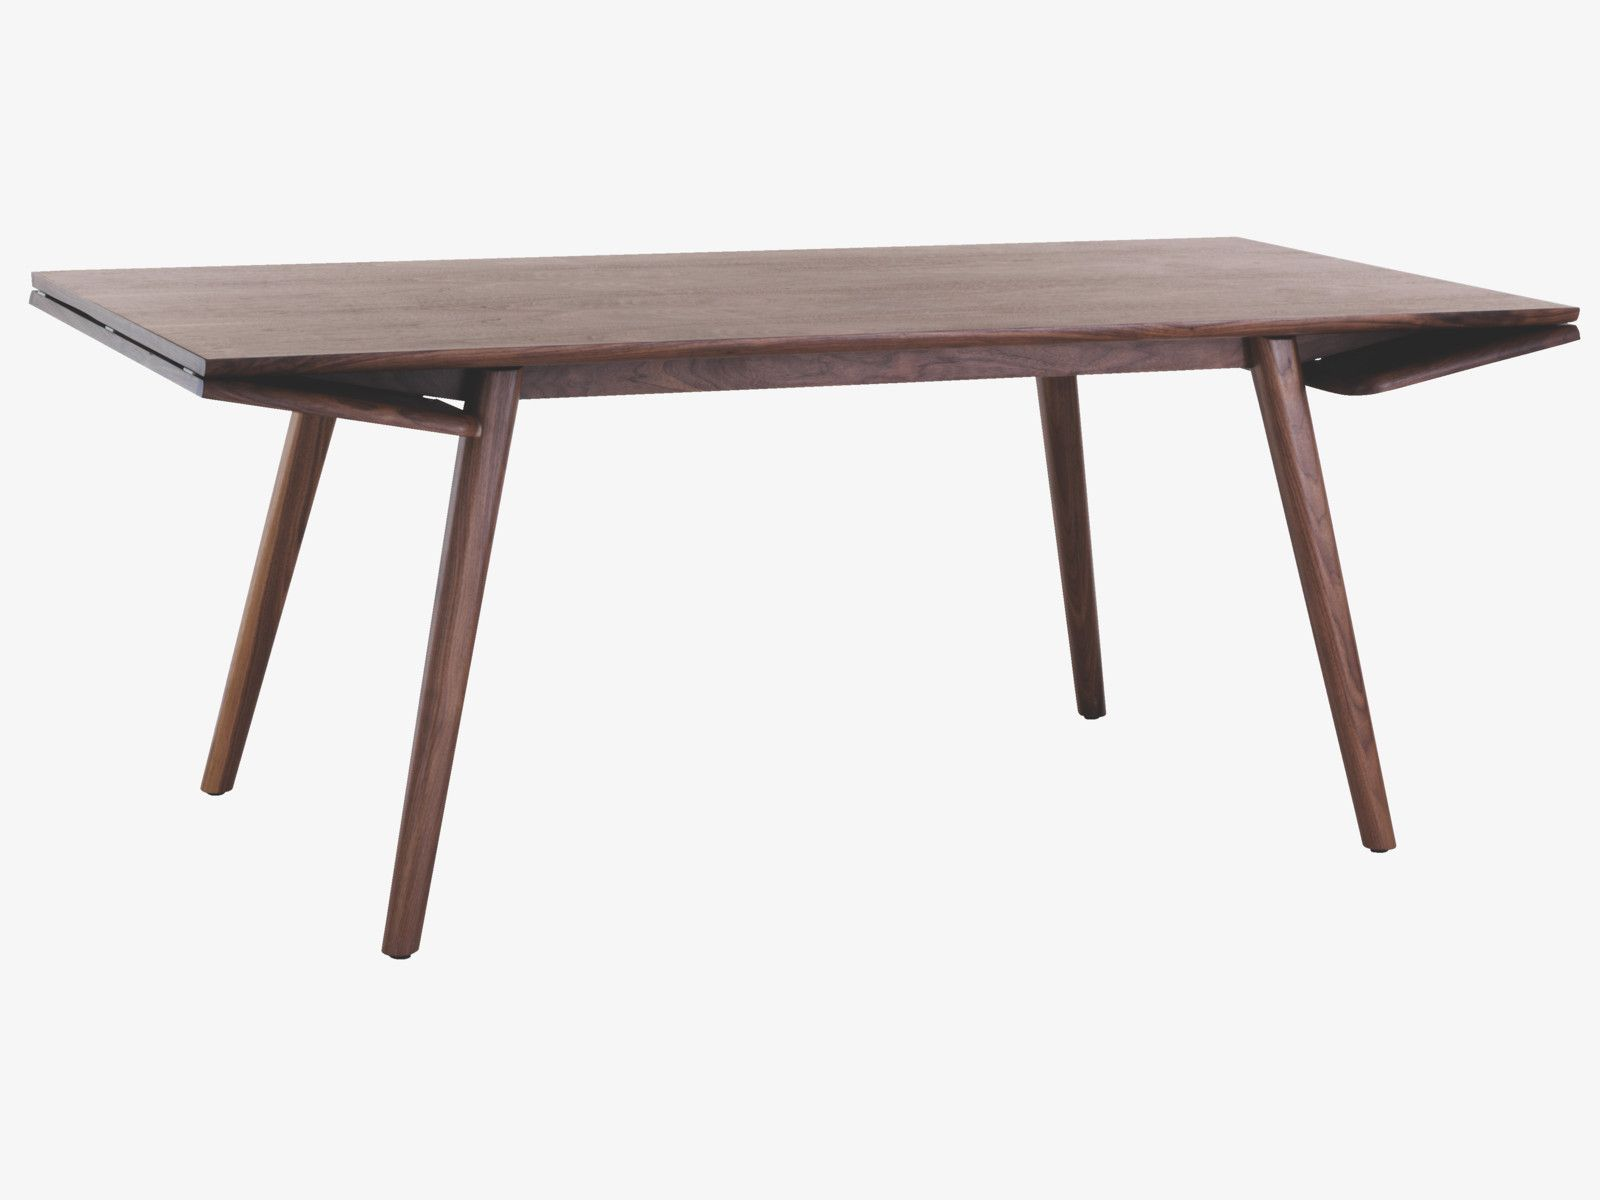 12 Seat Outdoor Dining Table Wing Brown Walnut 6 12 Seat Walnut Extending Dining Table